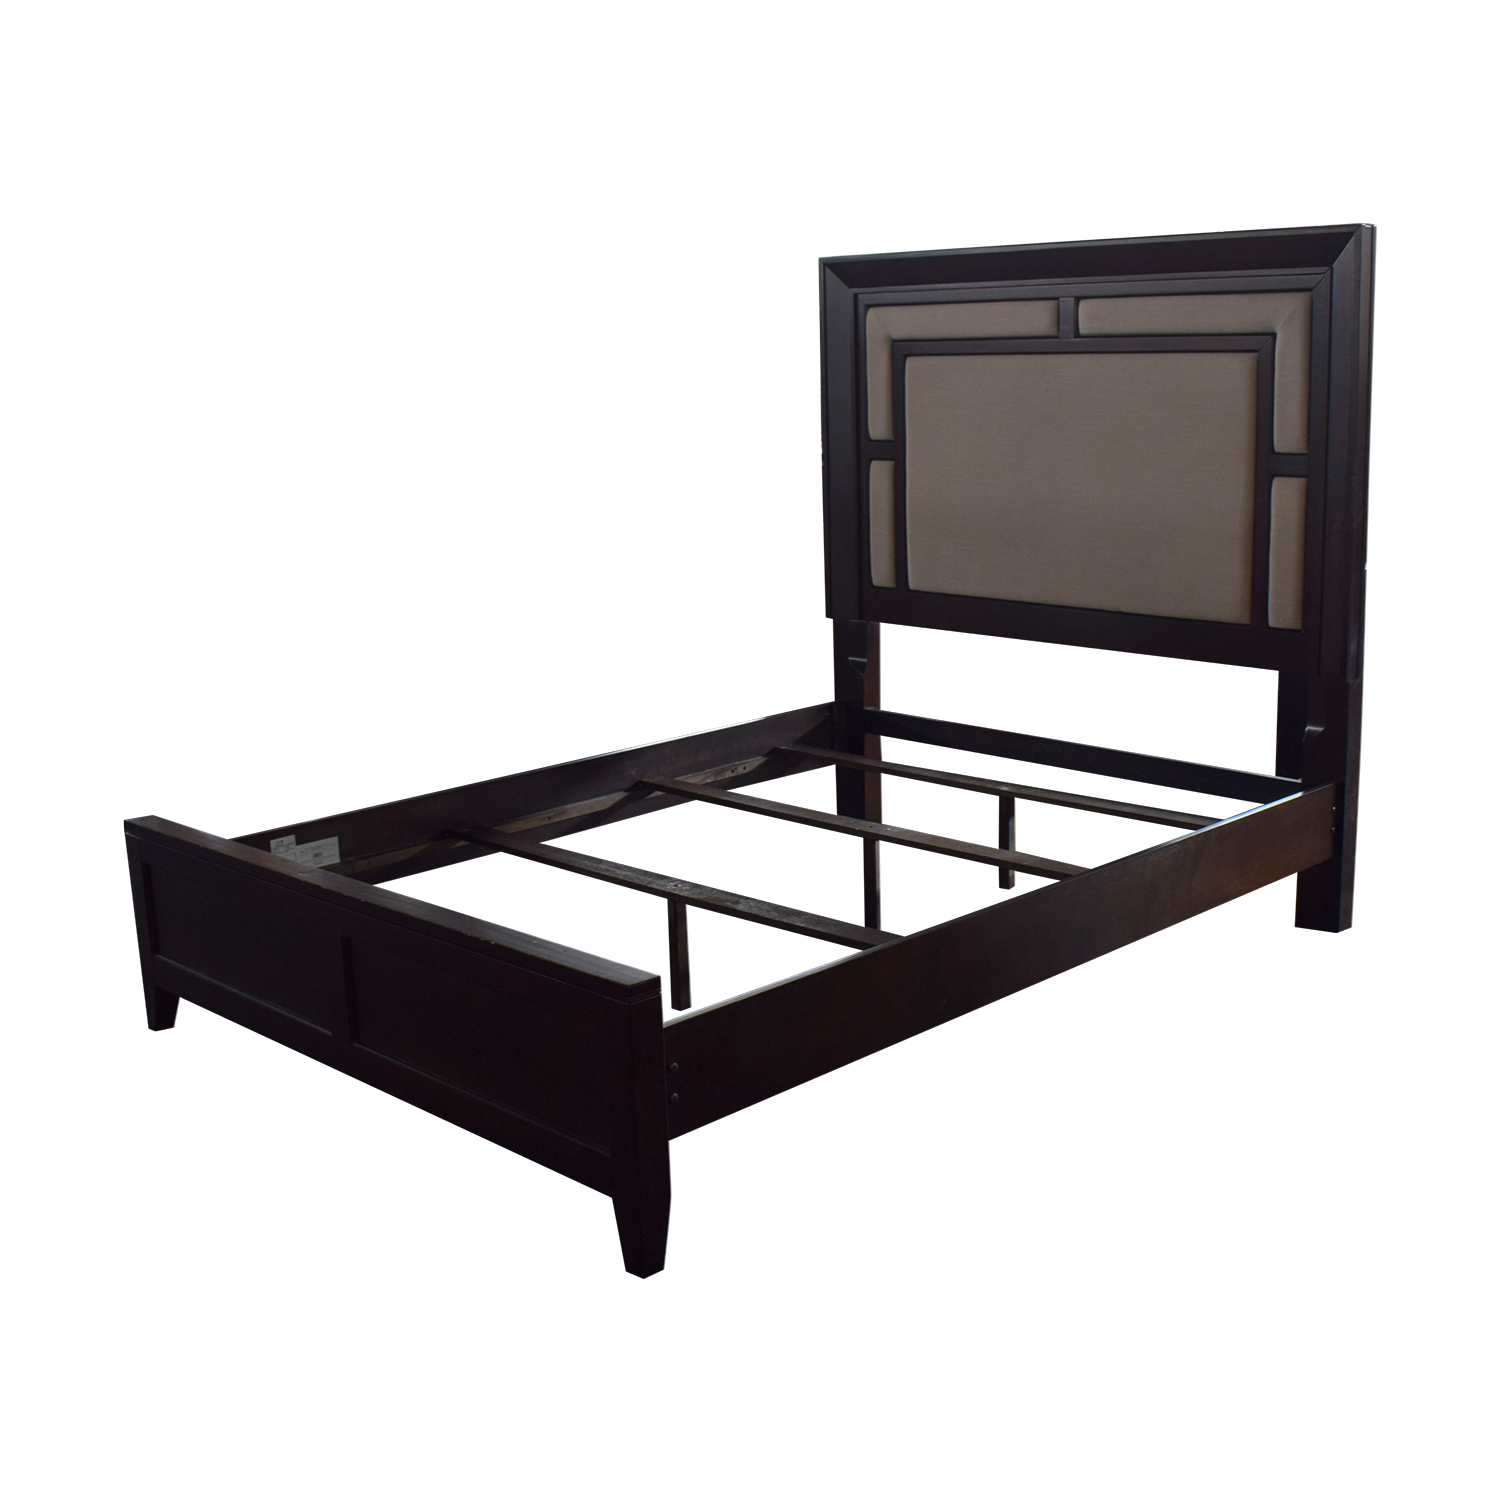 buy Raymour & Flanigan Cadence Queen Platform Bed Raymour & Flanigan Bed Frames